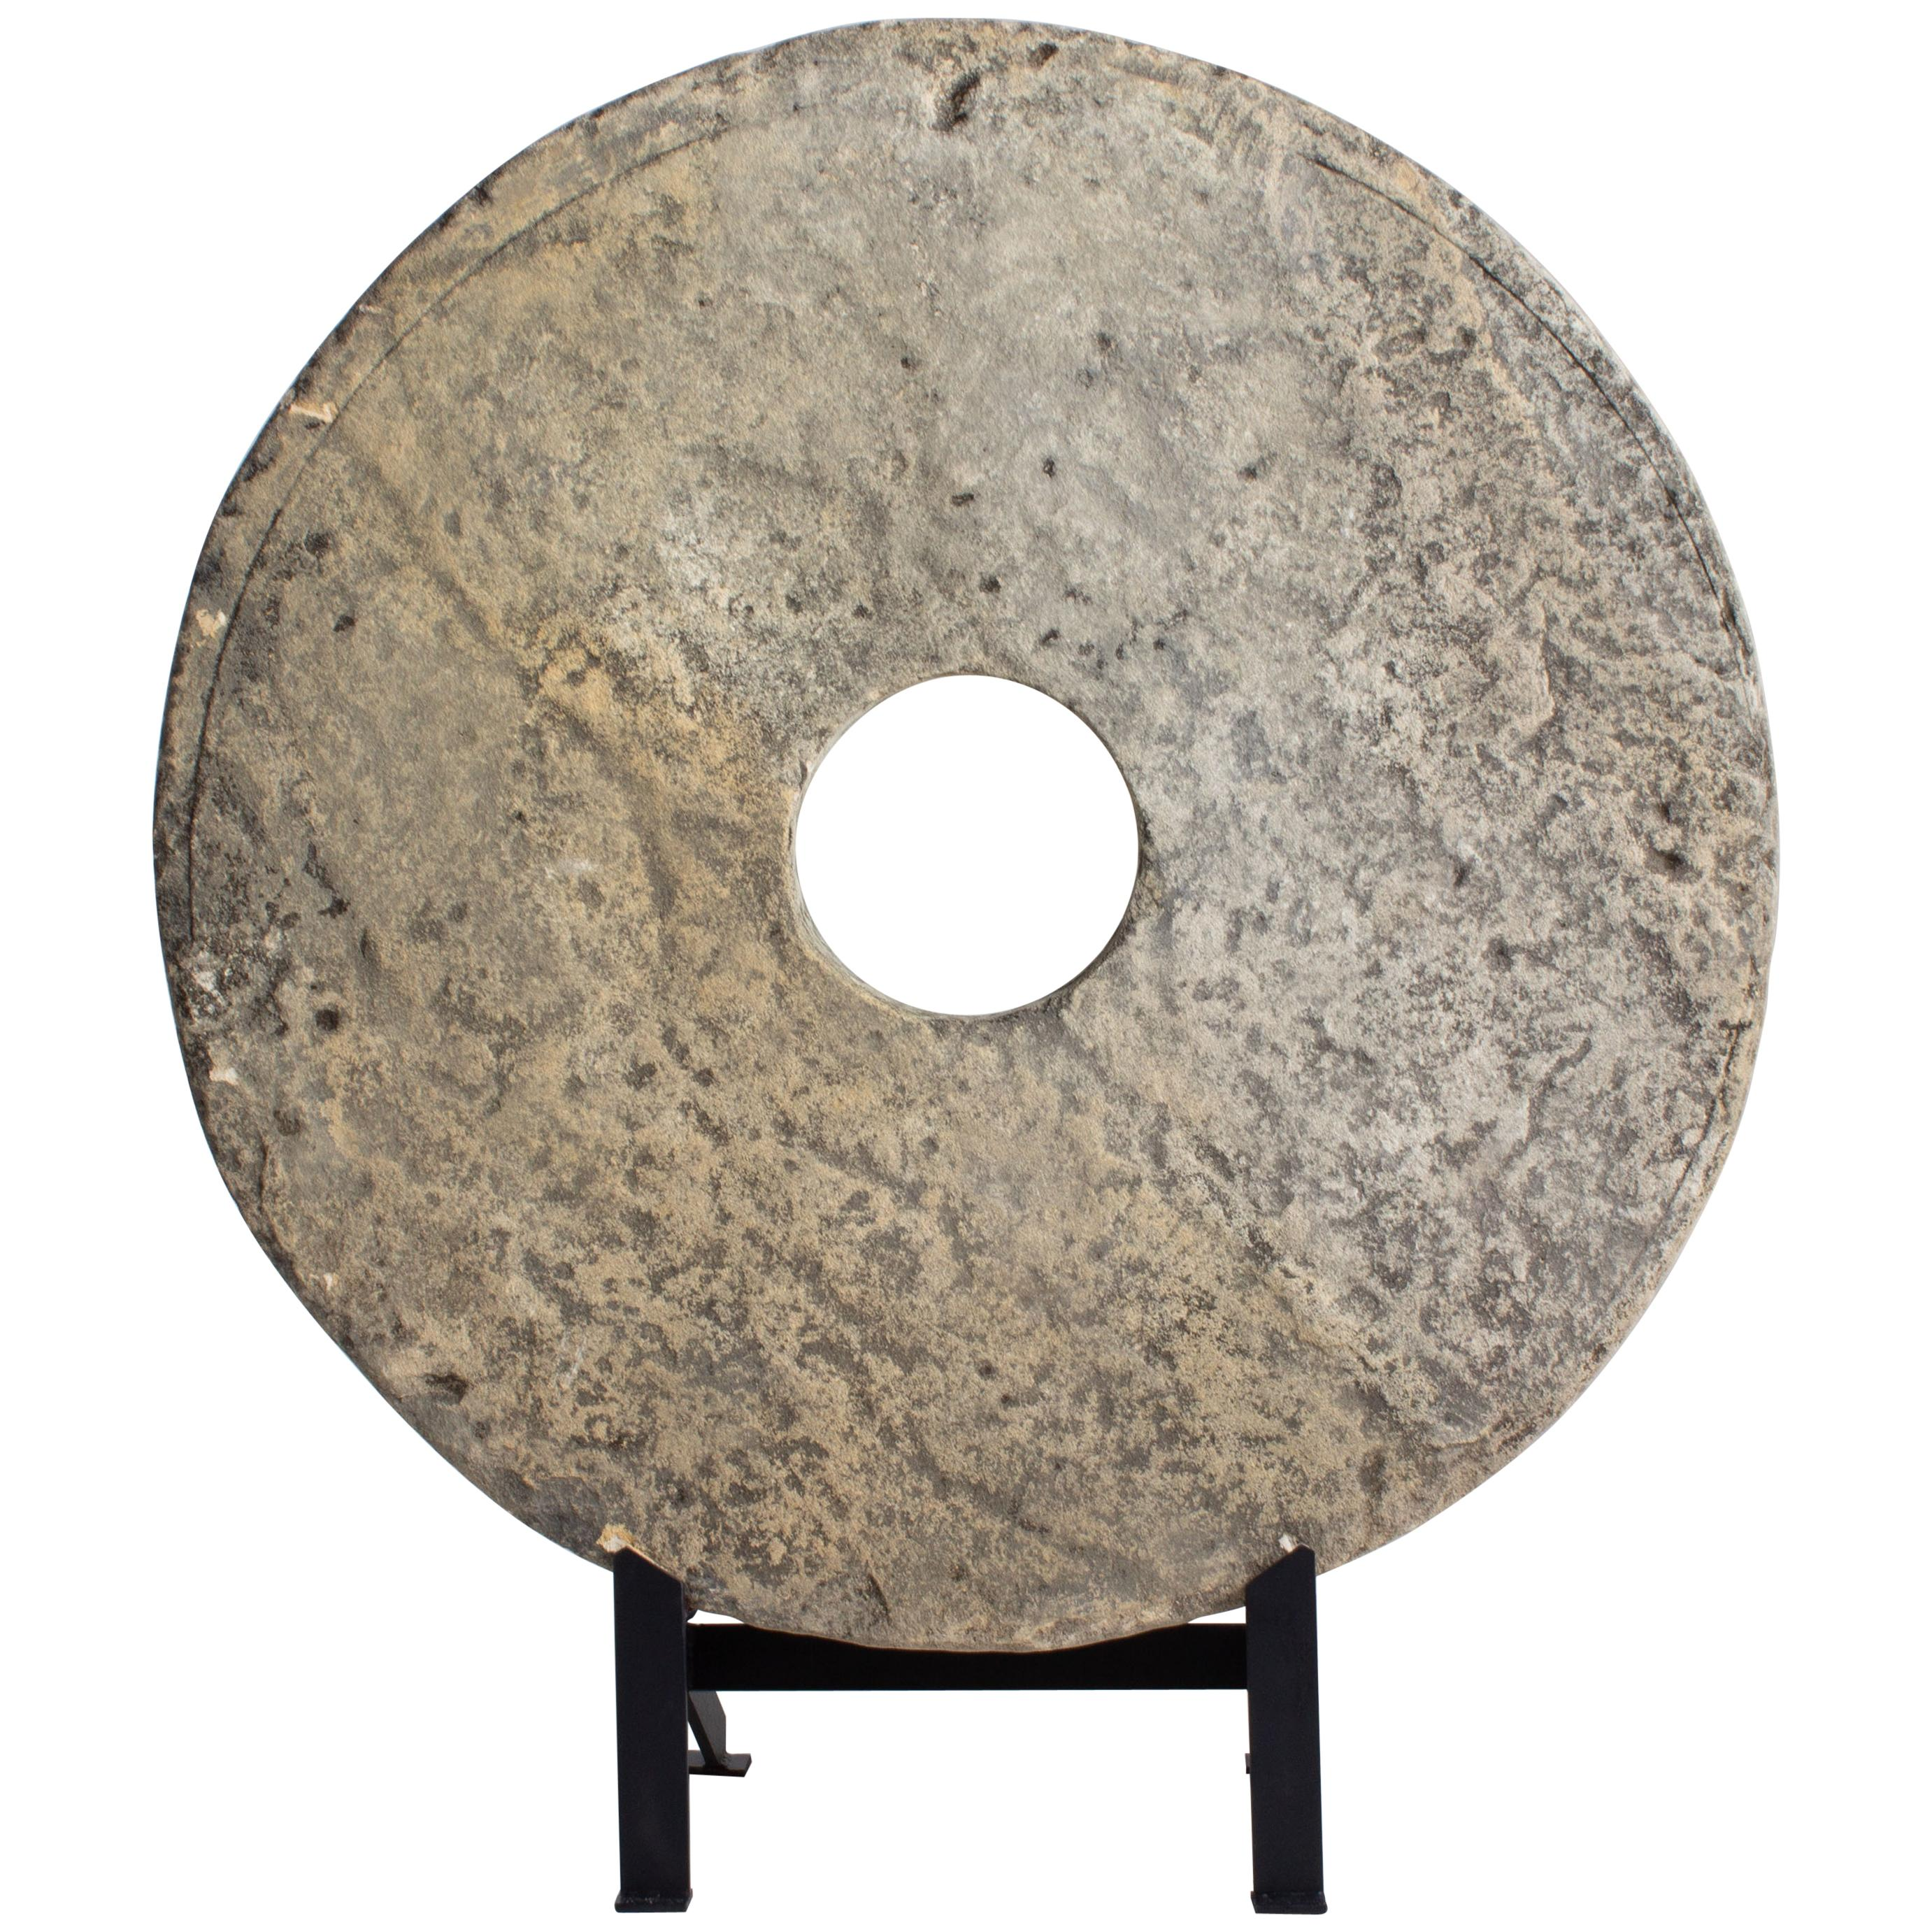 Large Chalkstone Architectural Element on Steel Mount